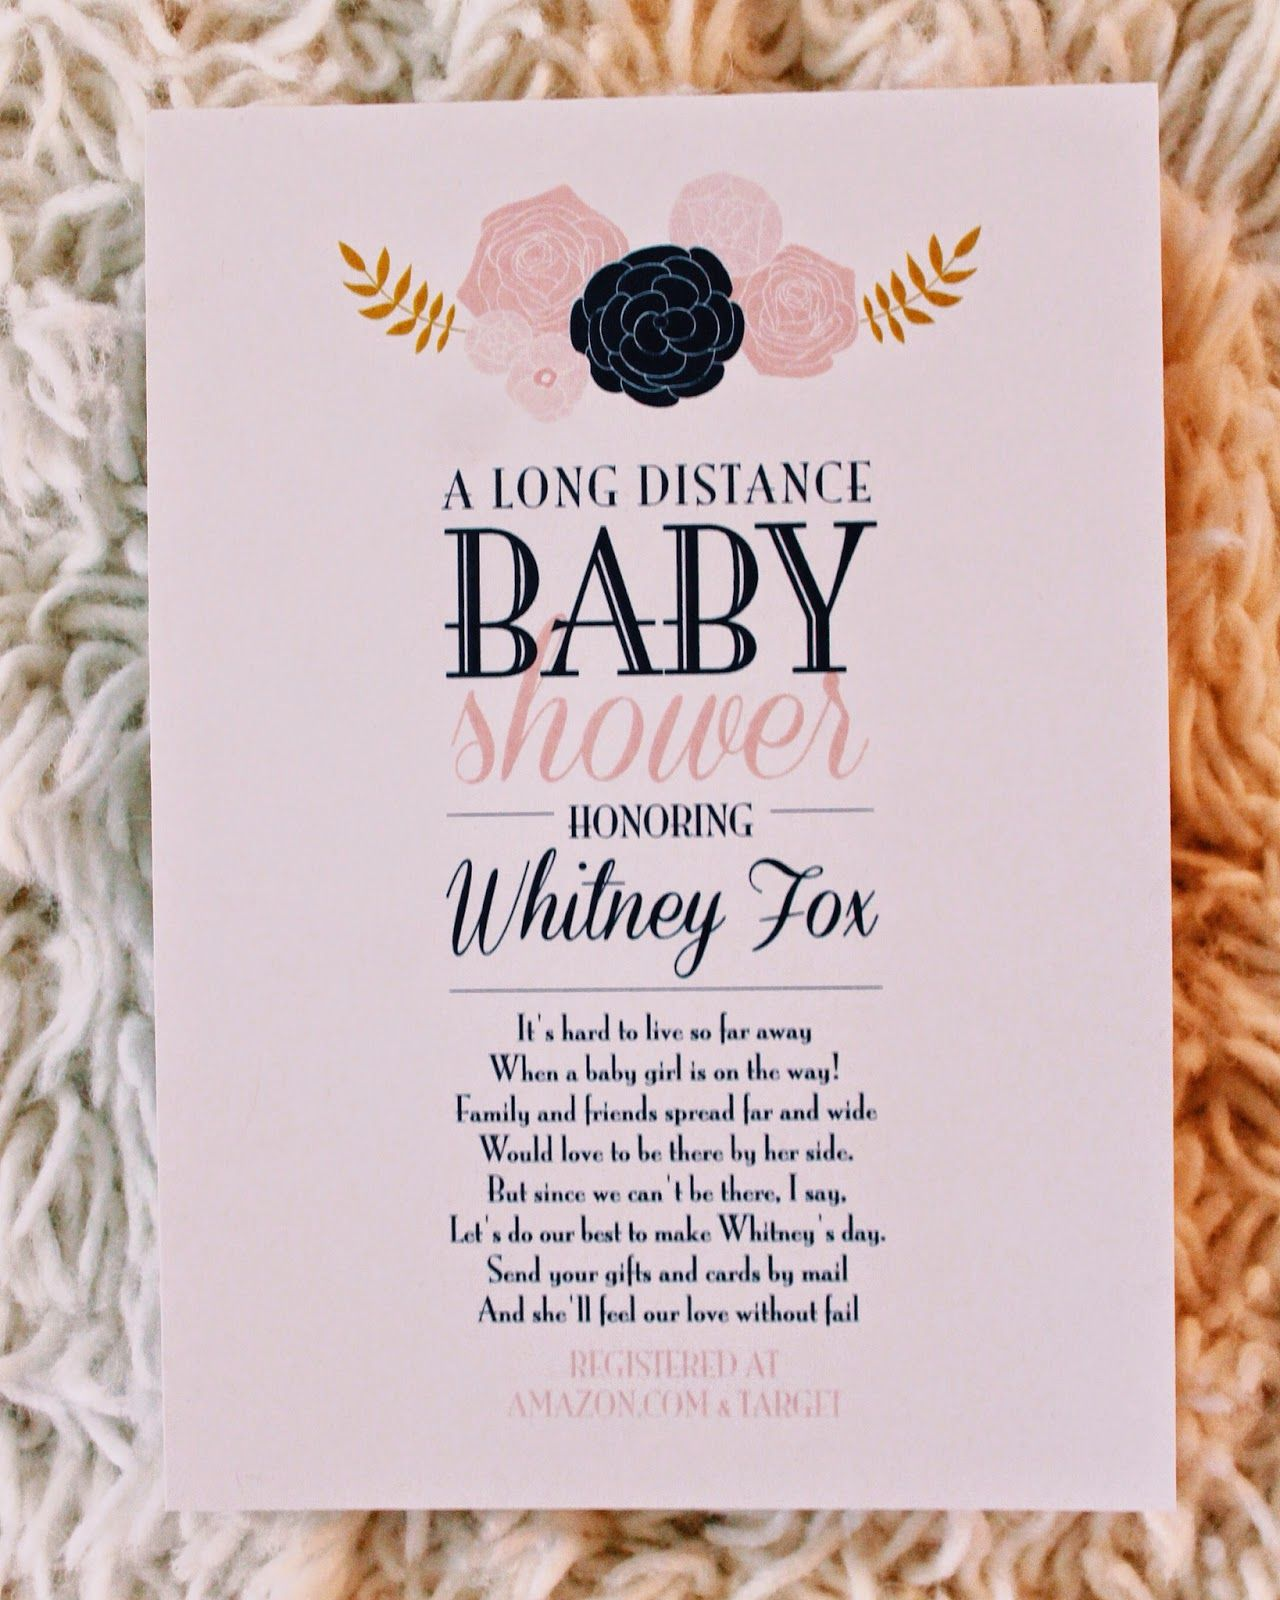 Long Distance Baby Shower Invites Are Available At Boardman Printing Long Distance Baby Shower Invitations Long Distance Baby Shower Virtual Baby Shower Ideas